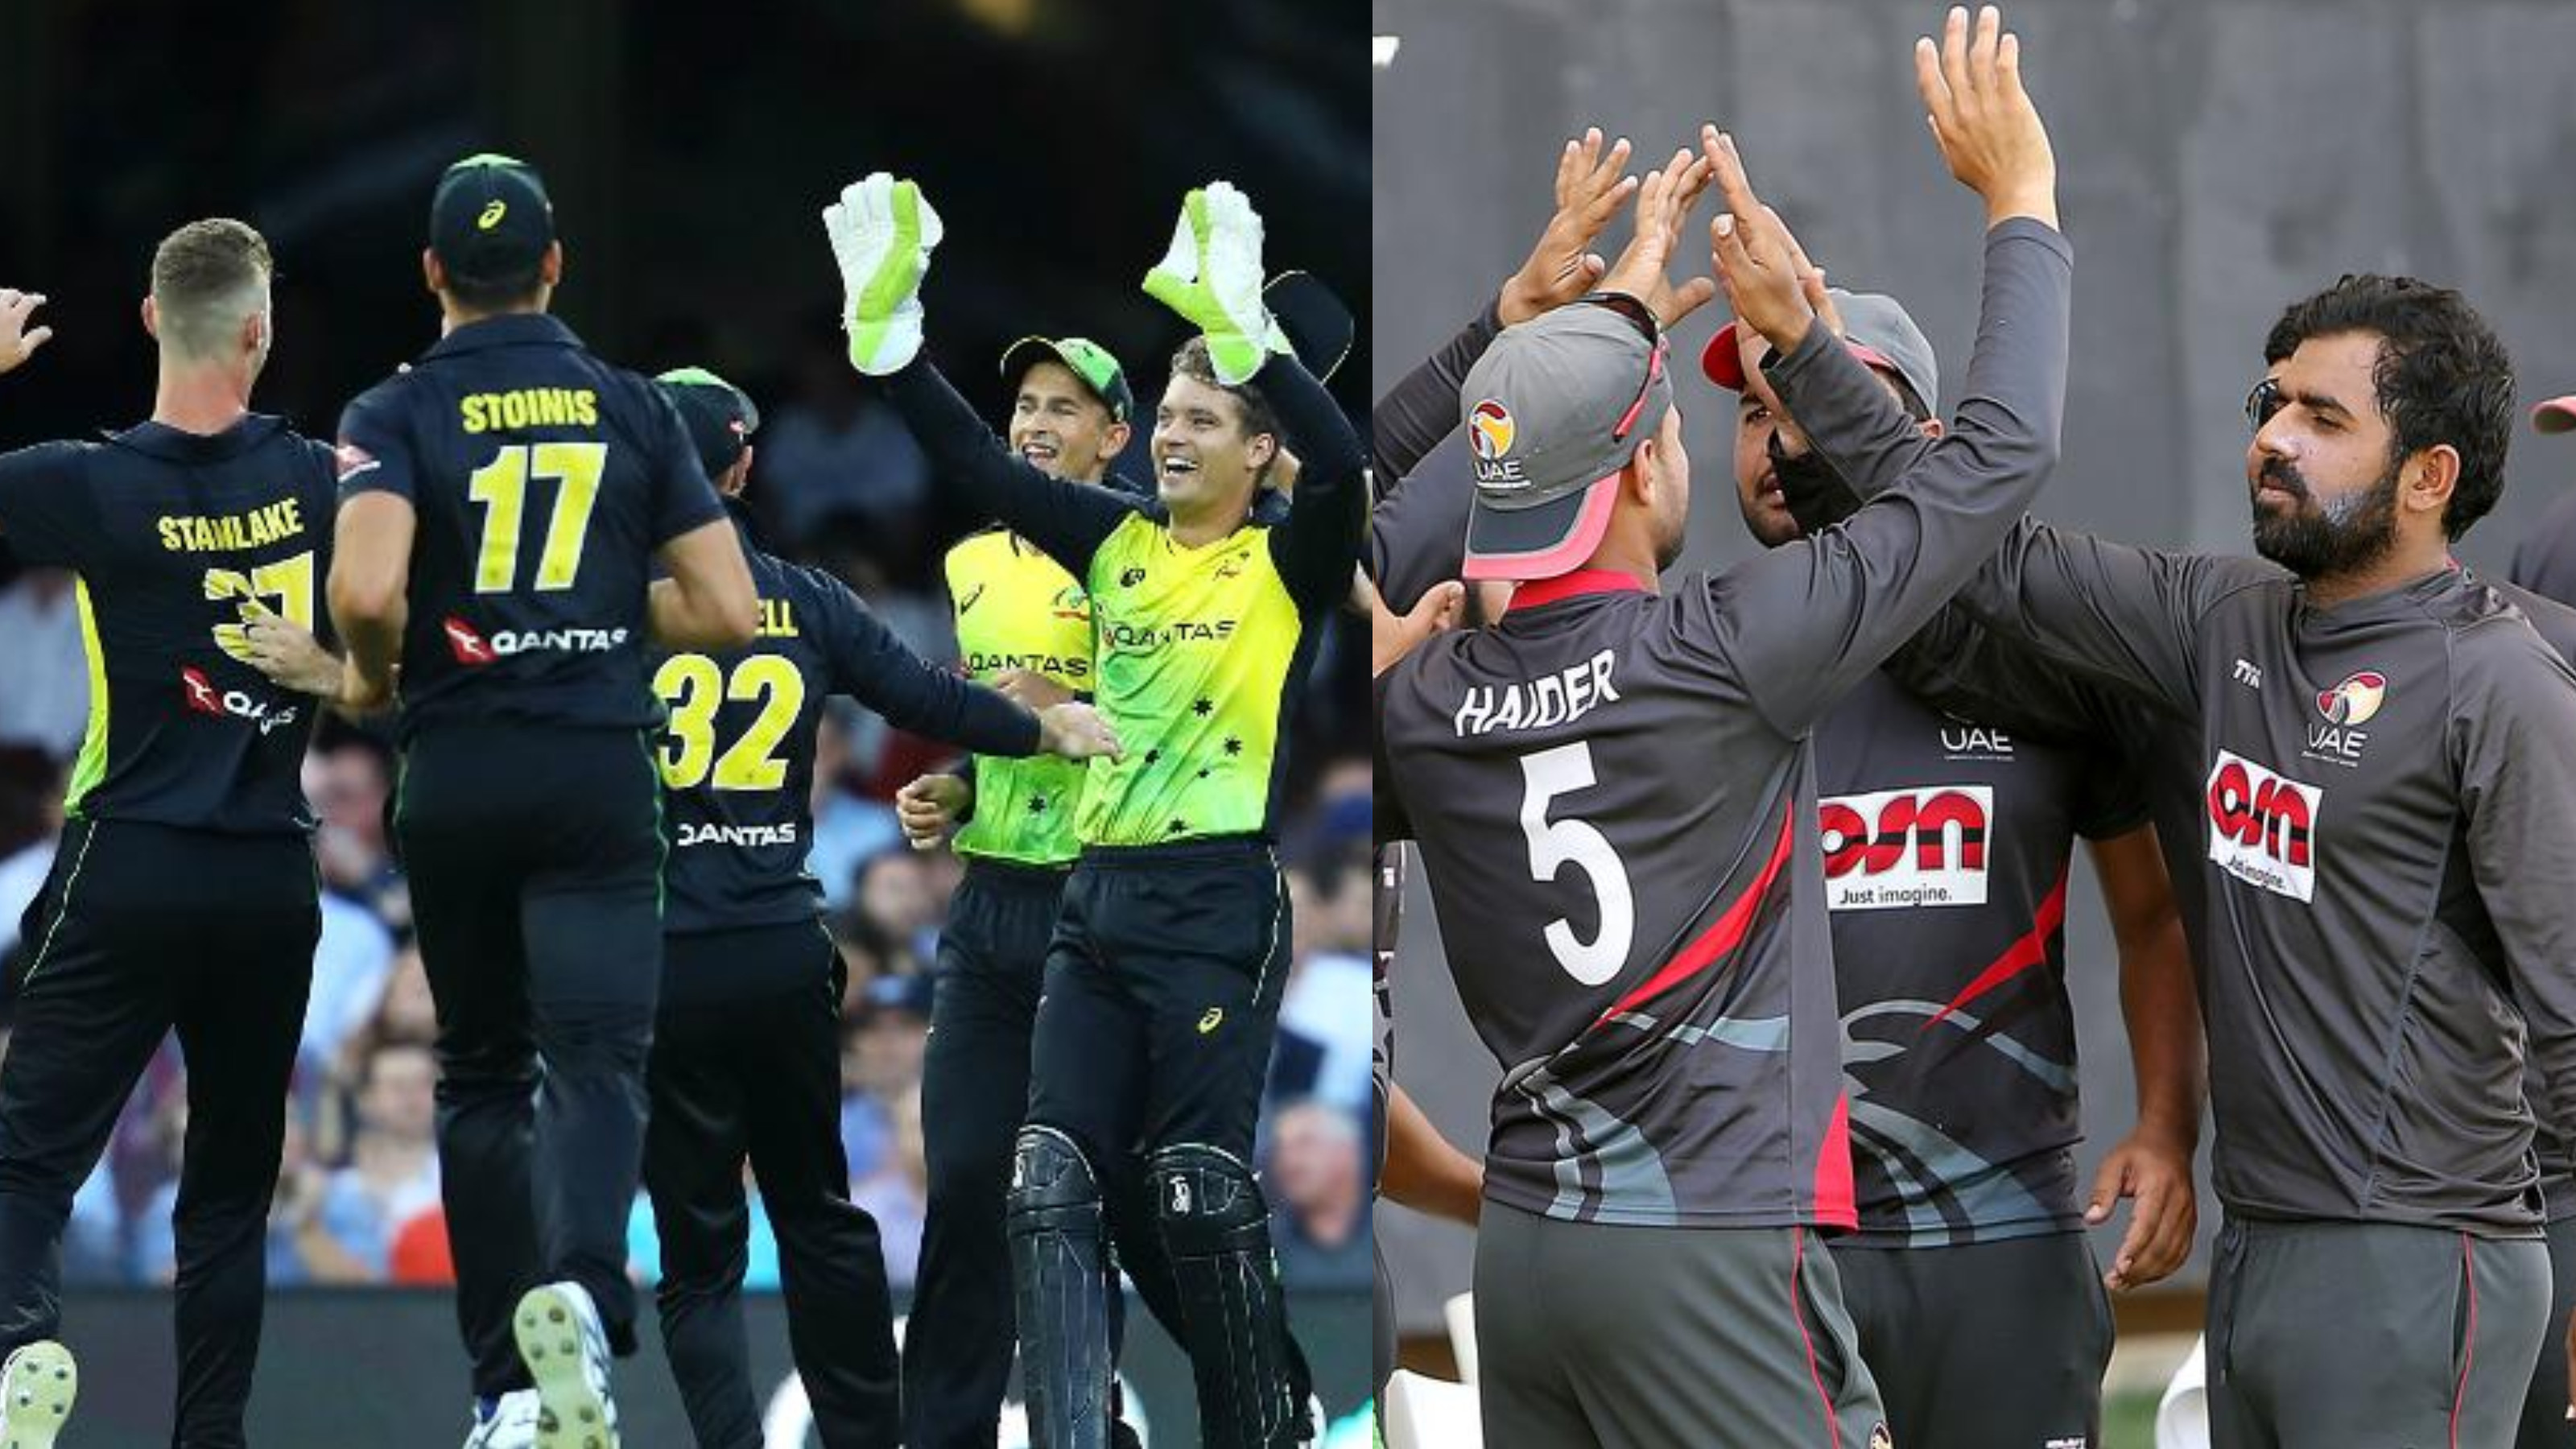 UAE to play Australia in the one-off T20I, confirms Emirates Cricket Board